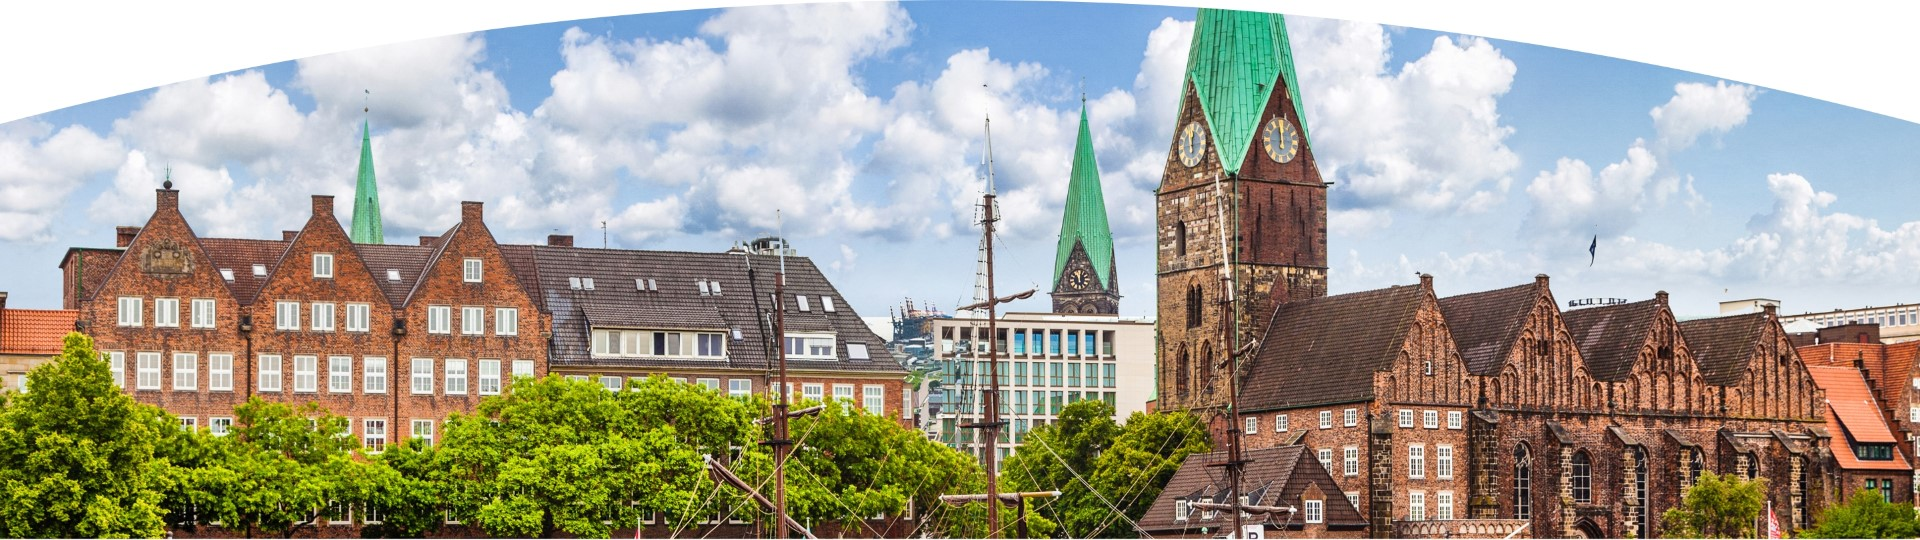 Old historic town with view of St.Martin church in Bremen